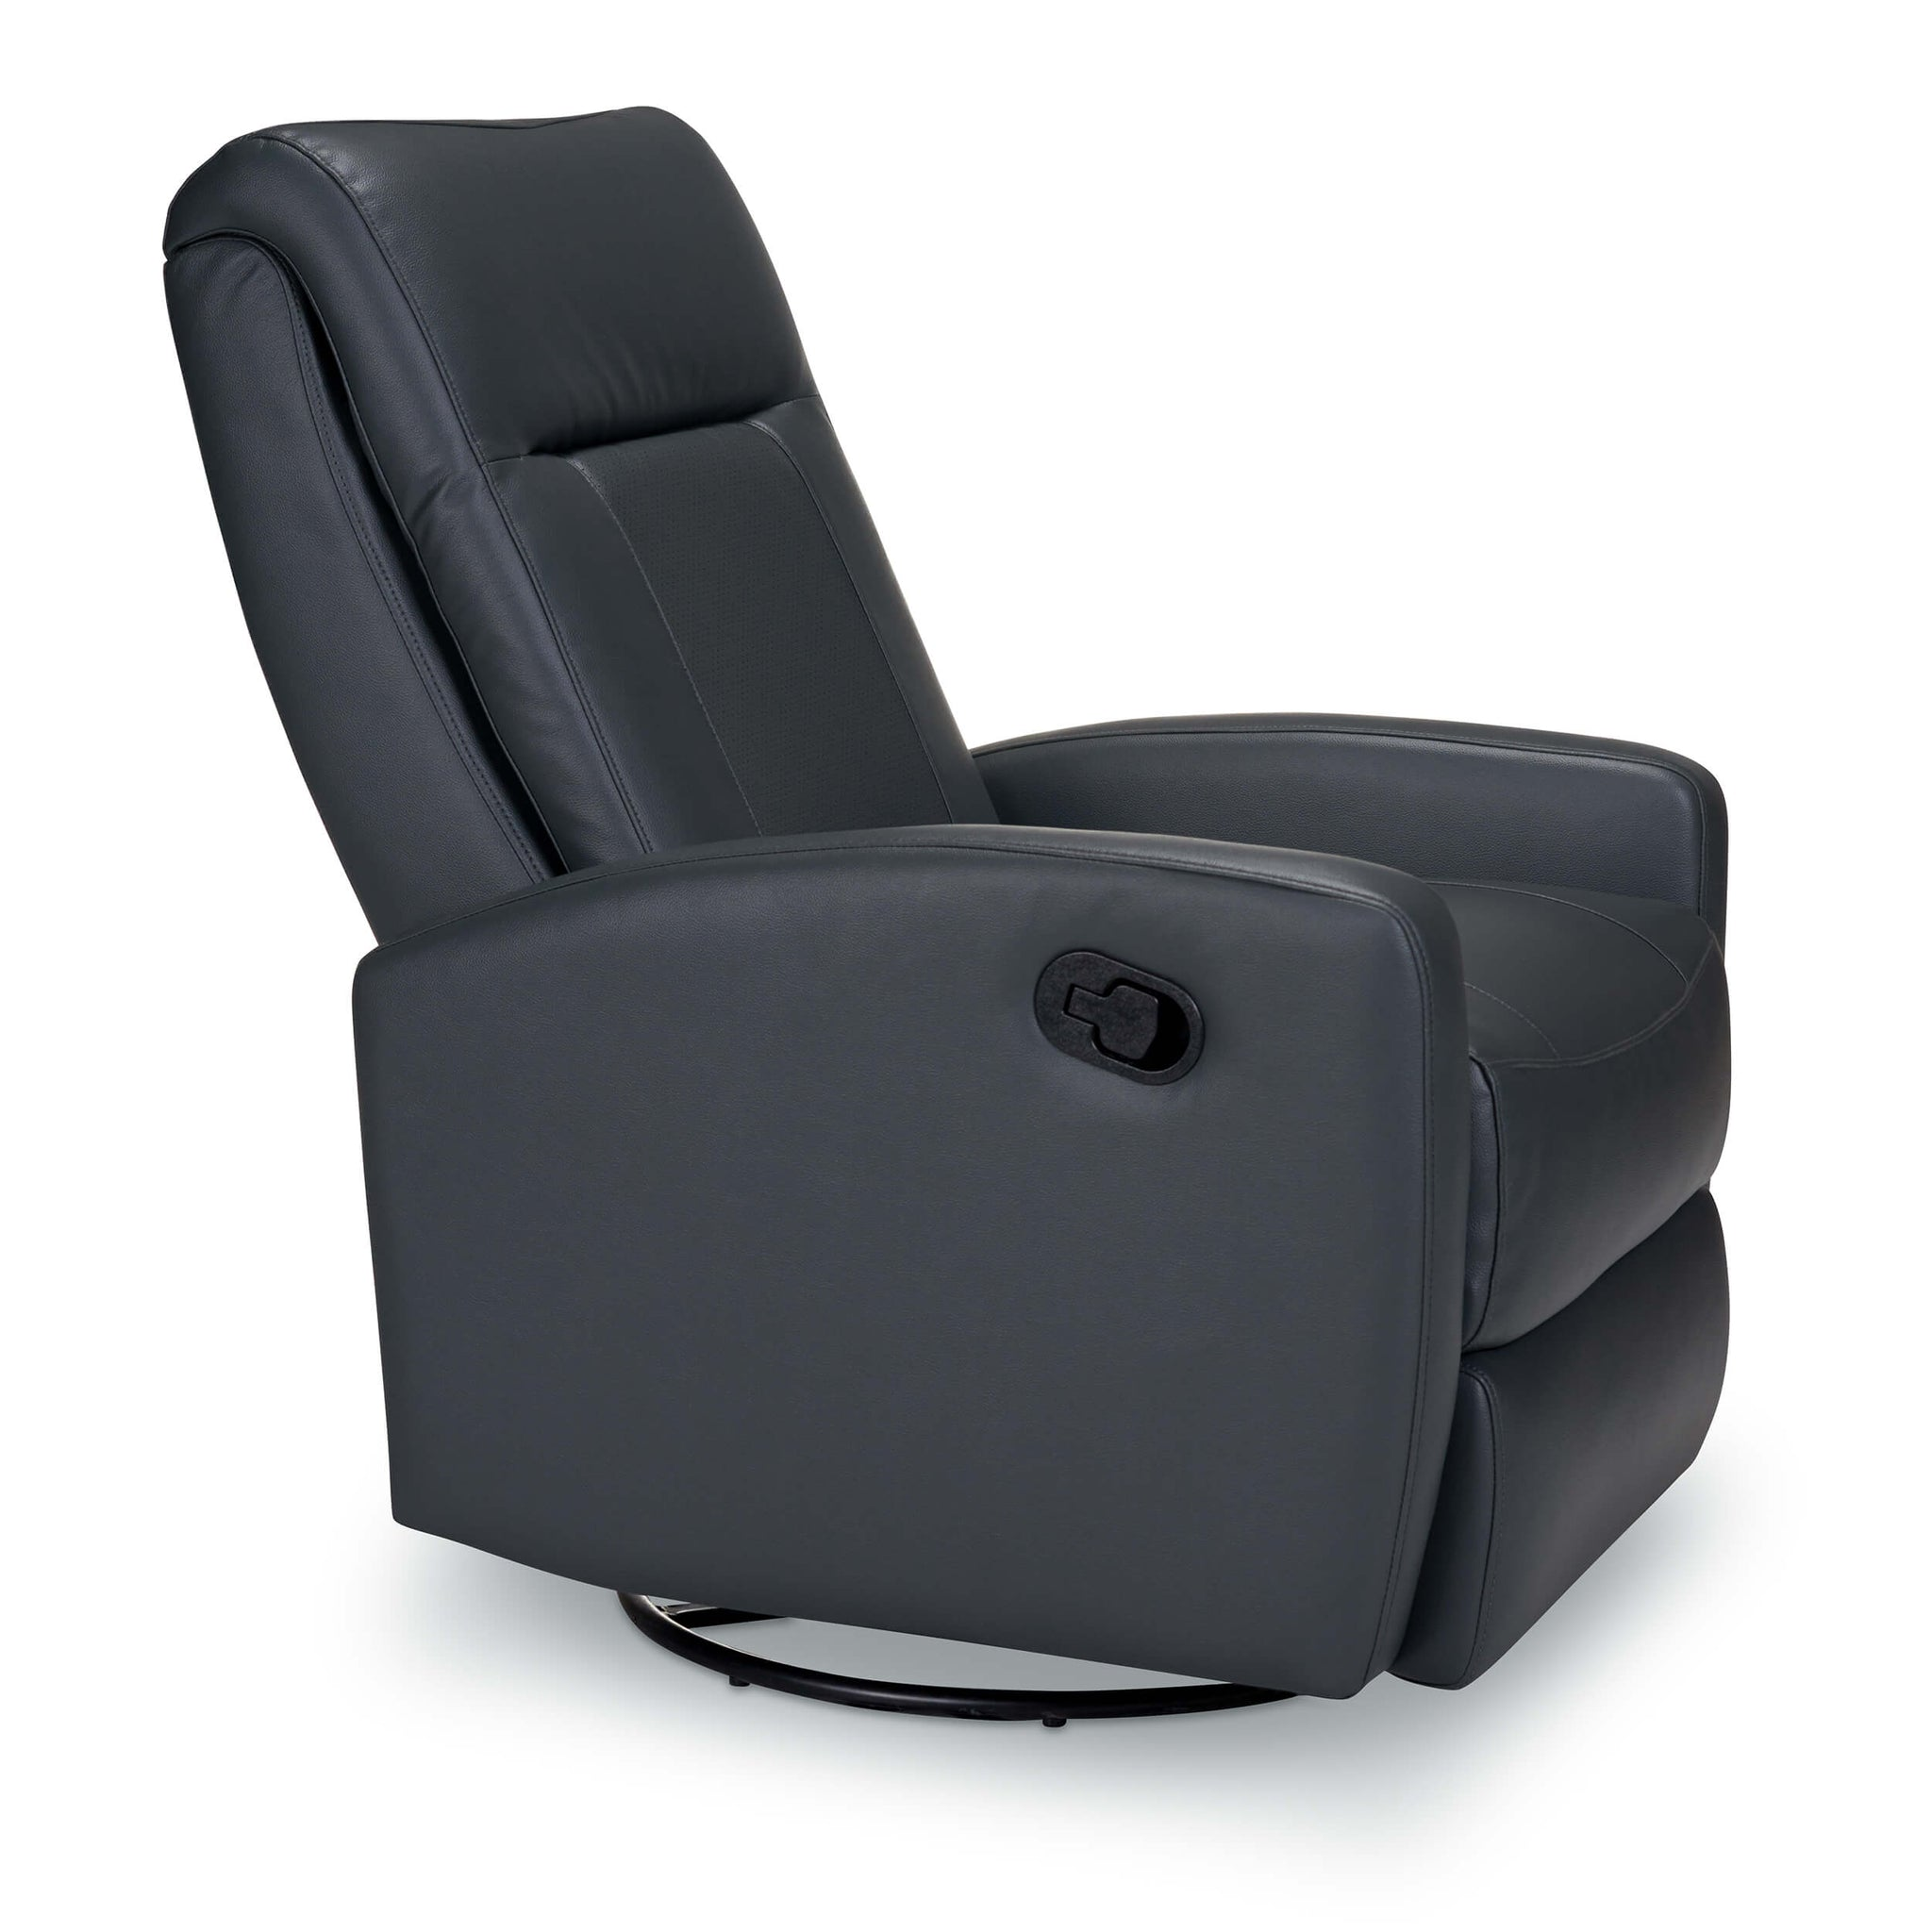 Pleasing Stefan Swivel Glider Recliner Customarchery Wood Chair Design Ideas Customarcherynet